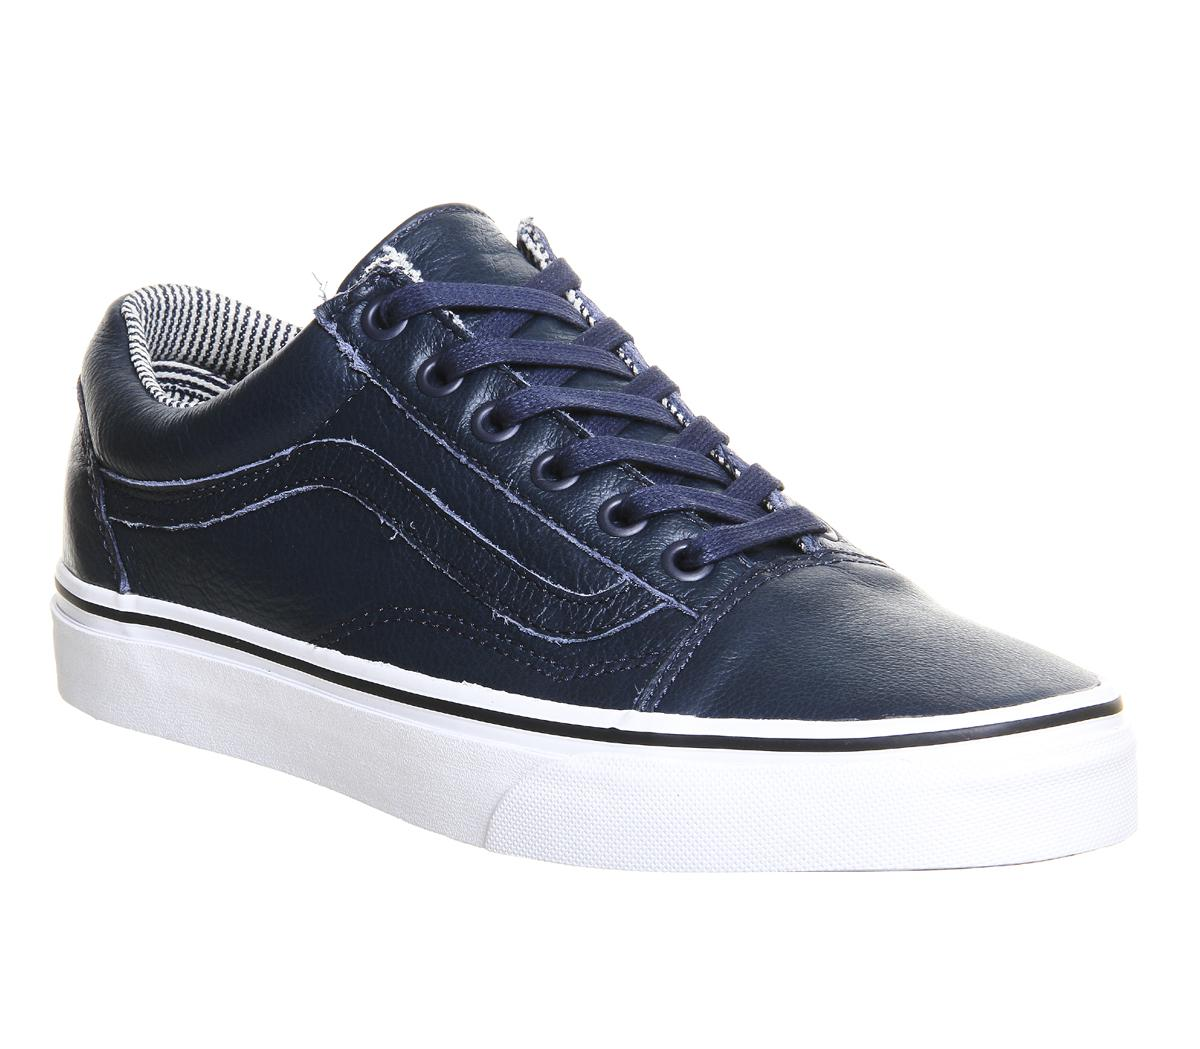 lyst vans old skool in blue for men. Black Bedroom Furniture Sets. Home Design Ideas